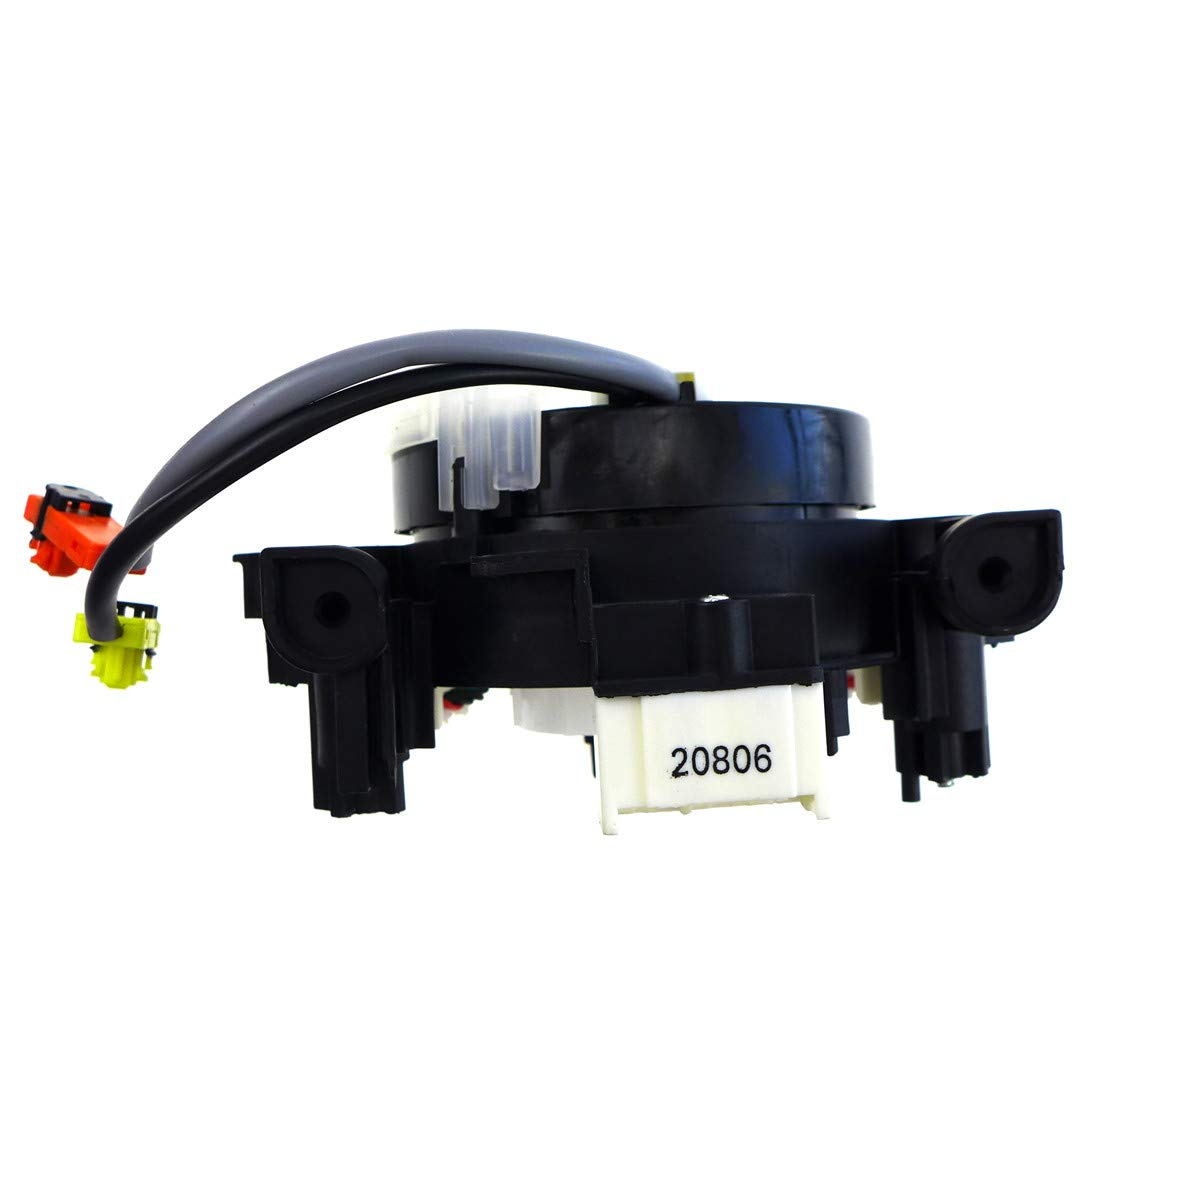 Clock Spring for 2007-2012 Nissan Sentra Steering Wheel Air Bag Spiral Cable Clock Spring with Cruise and Functions